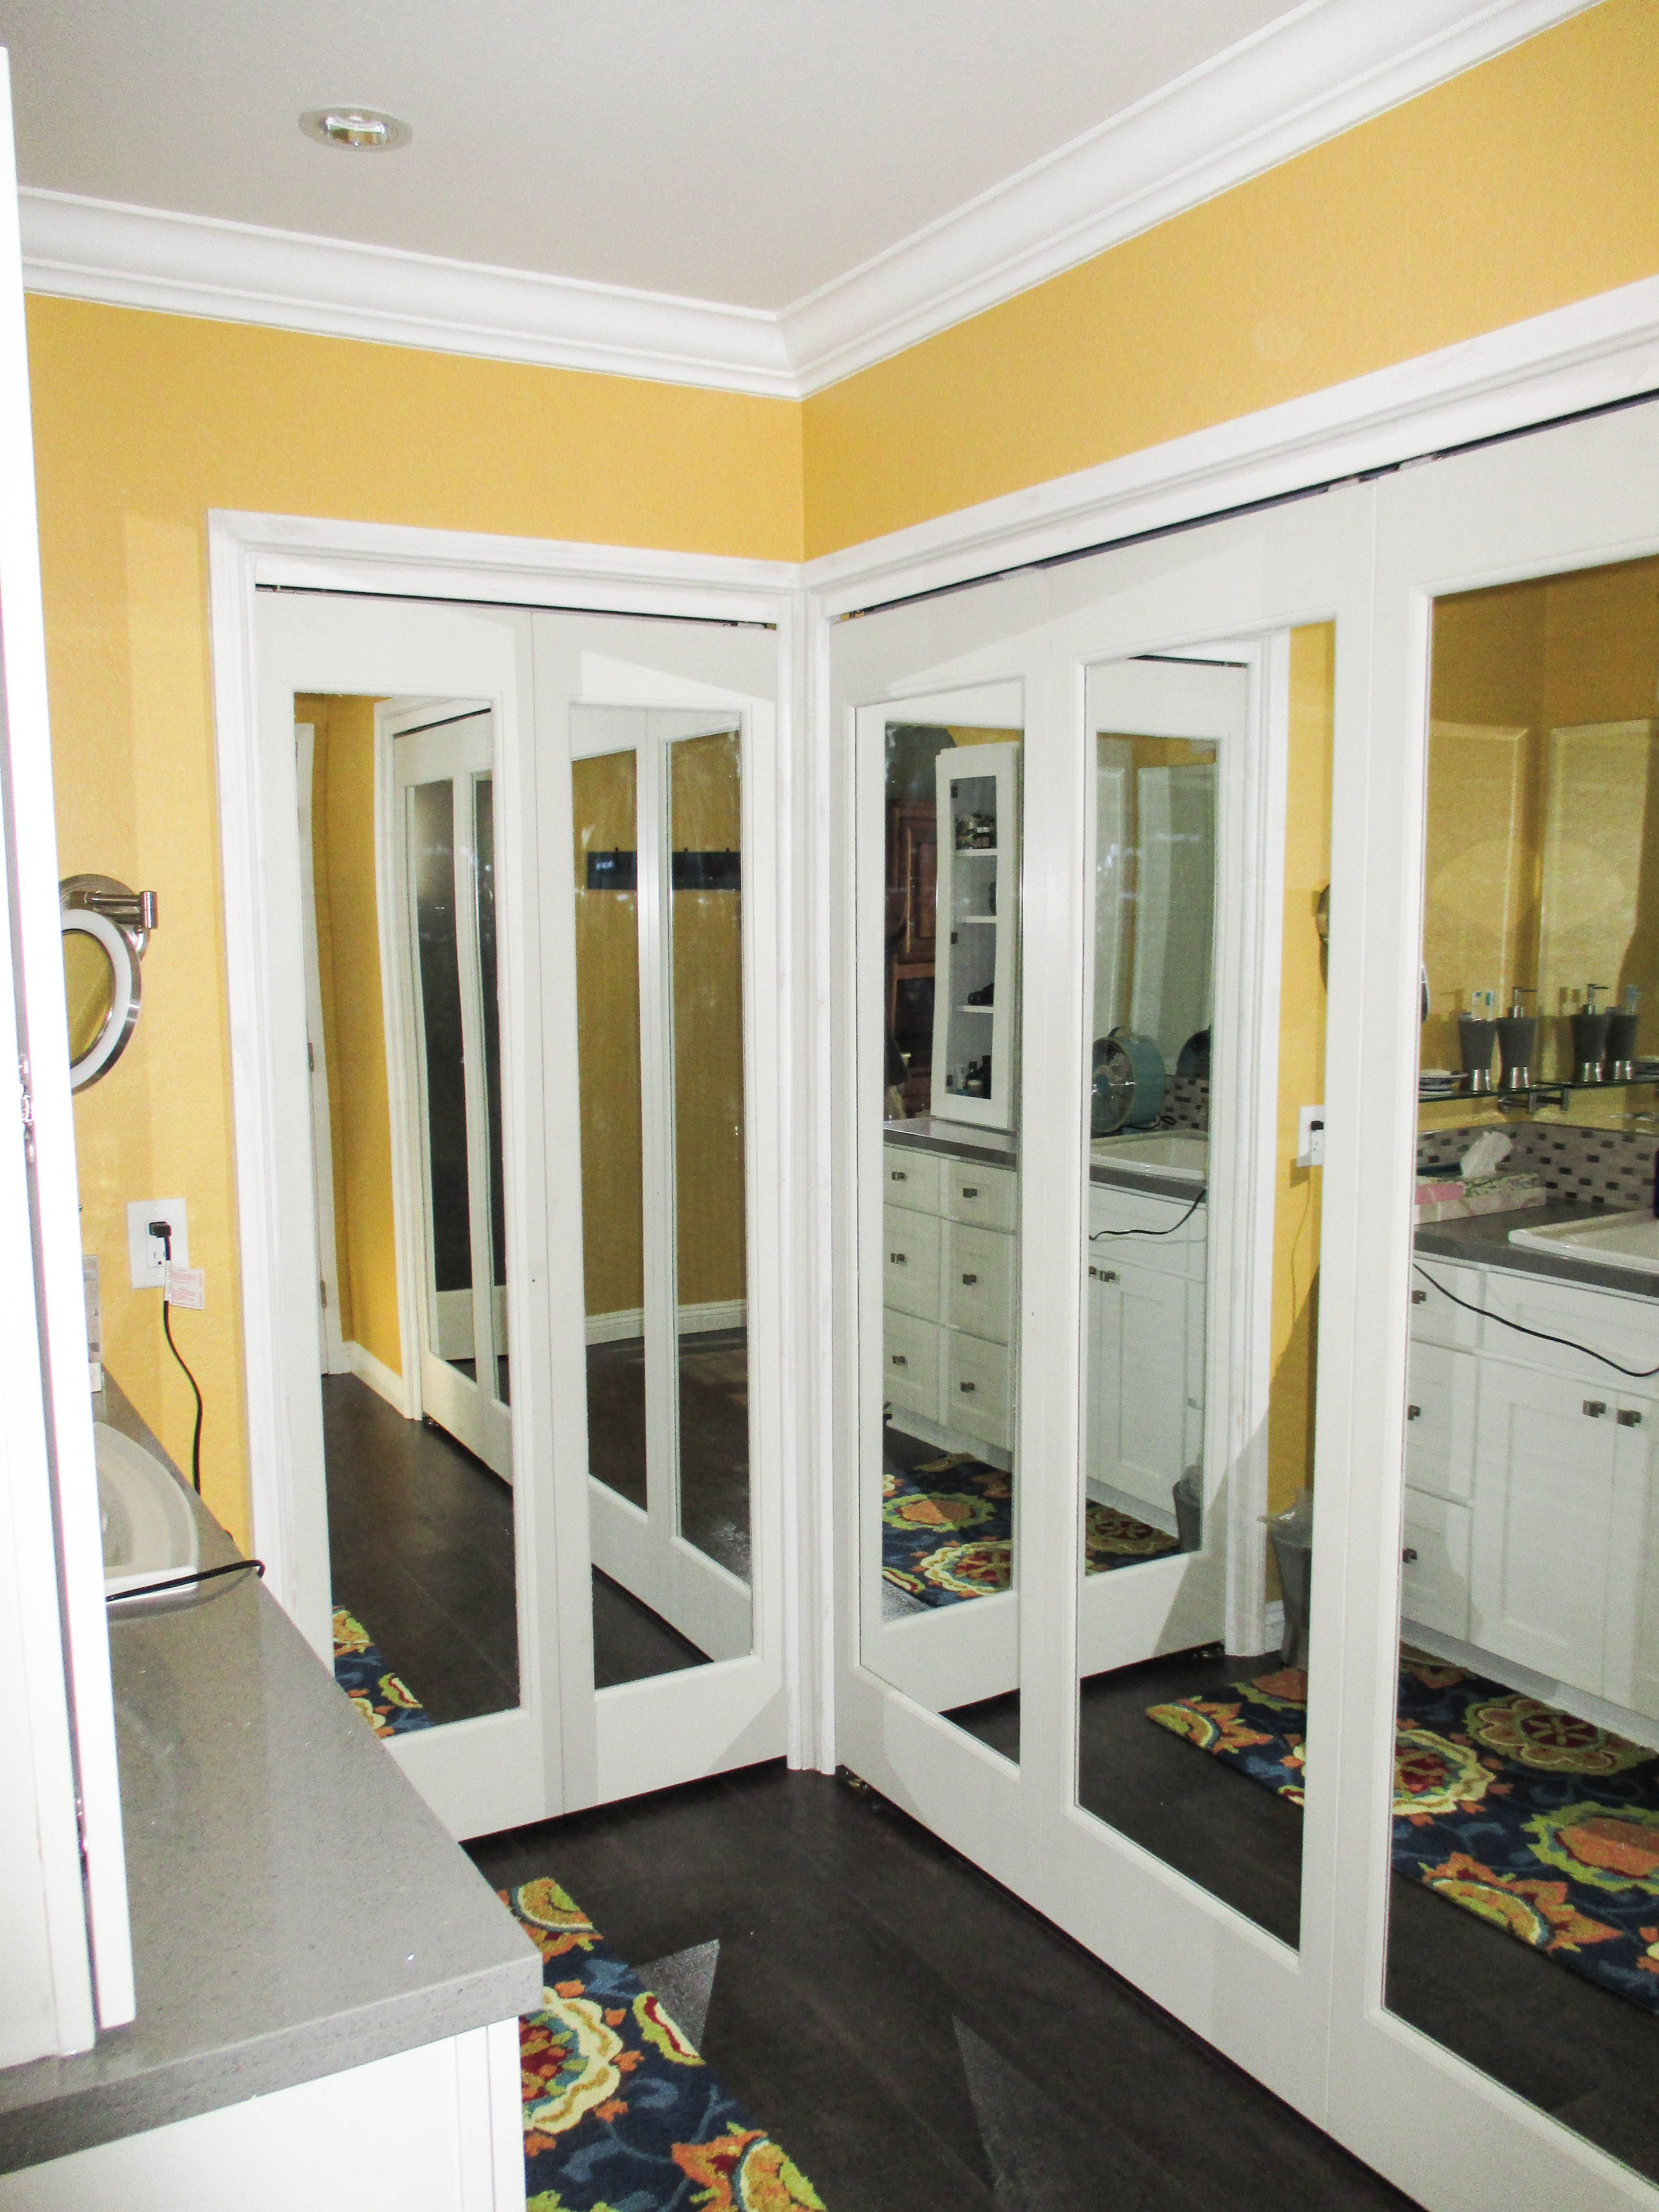 Check Out These Bi Folding Ovation Closet Doors With Mirrors That